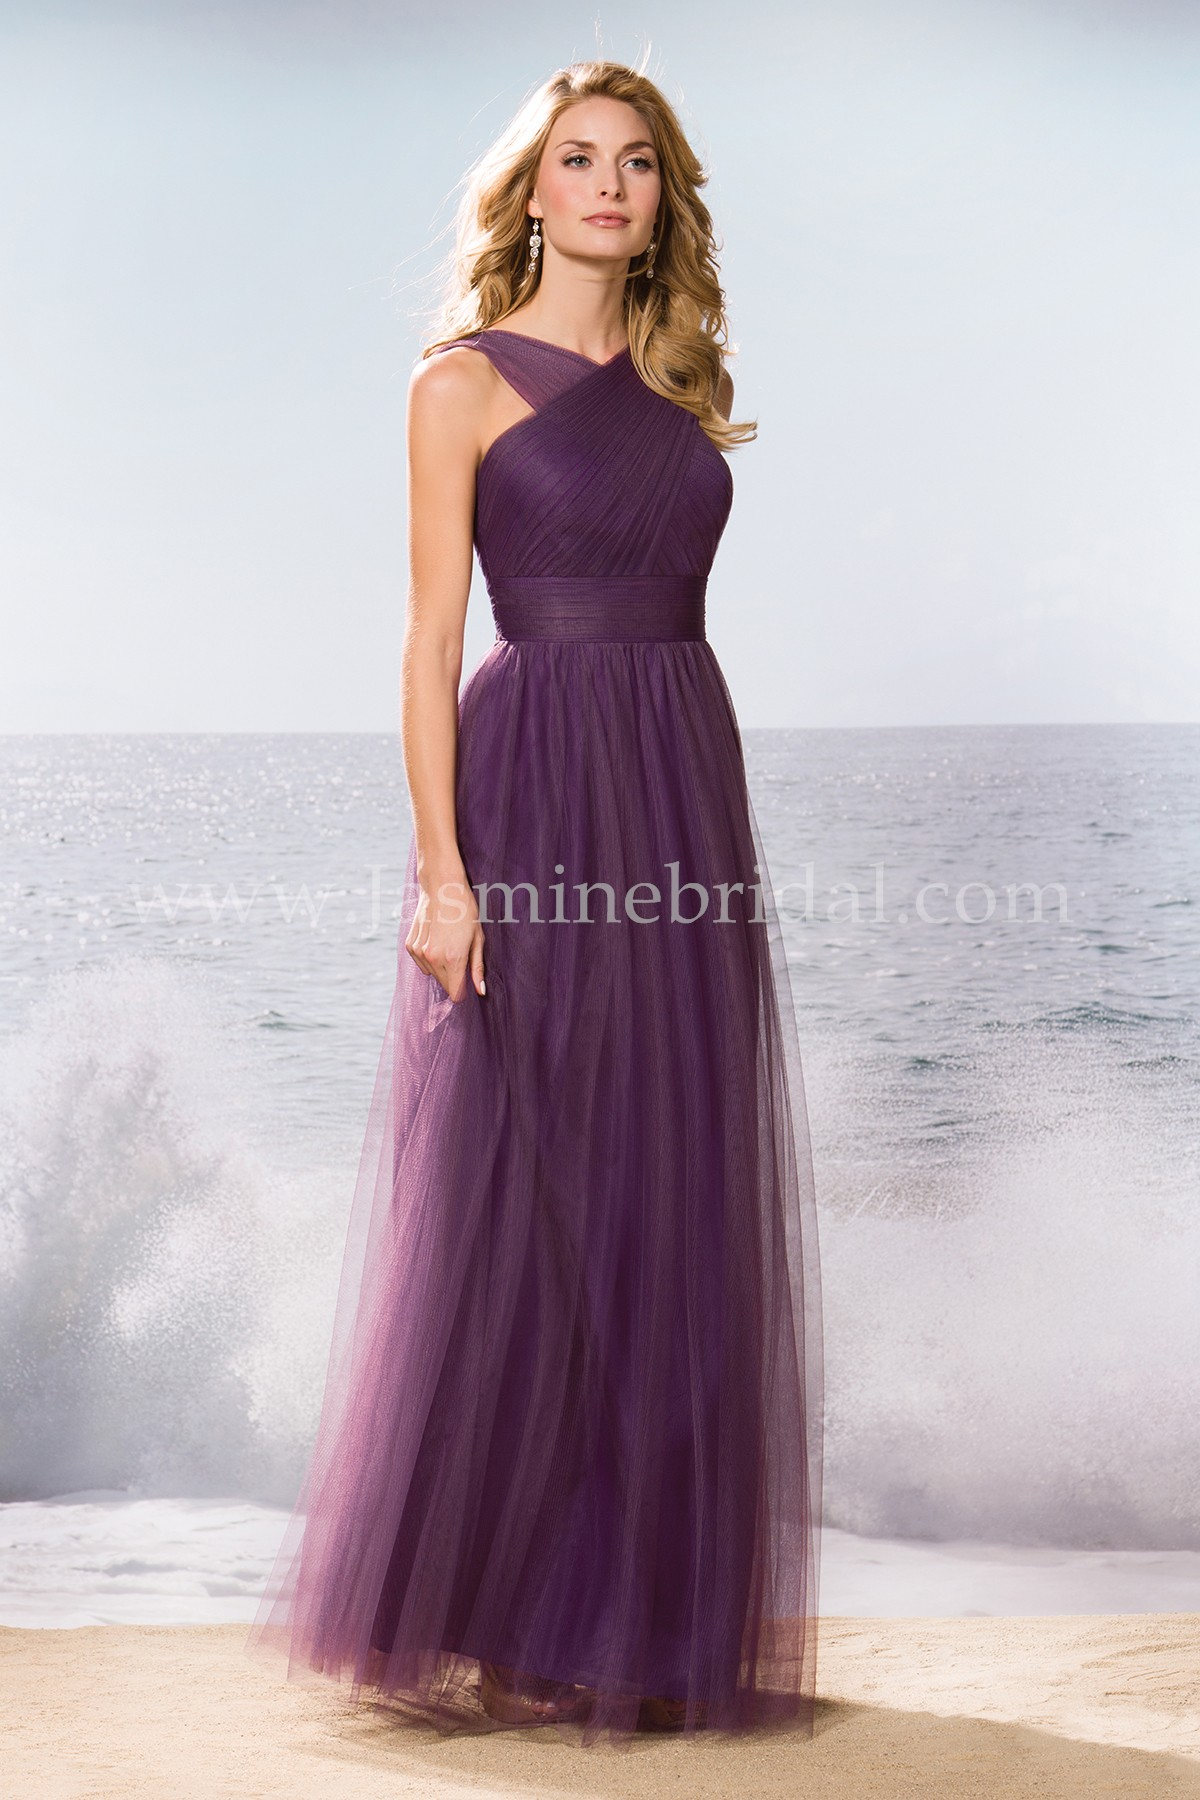 Mauve Bridesmaid Dresses Uk Gallery - Braidsmaid Dress, Cocktail ...